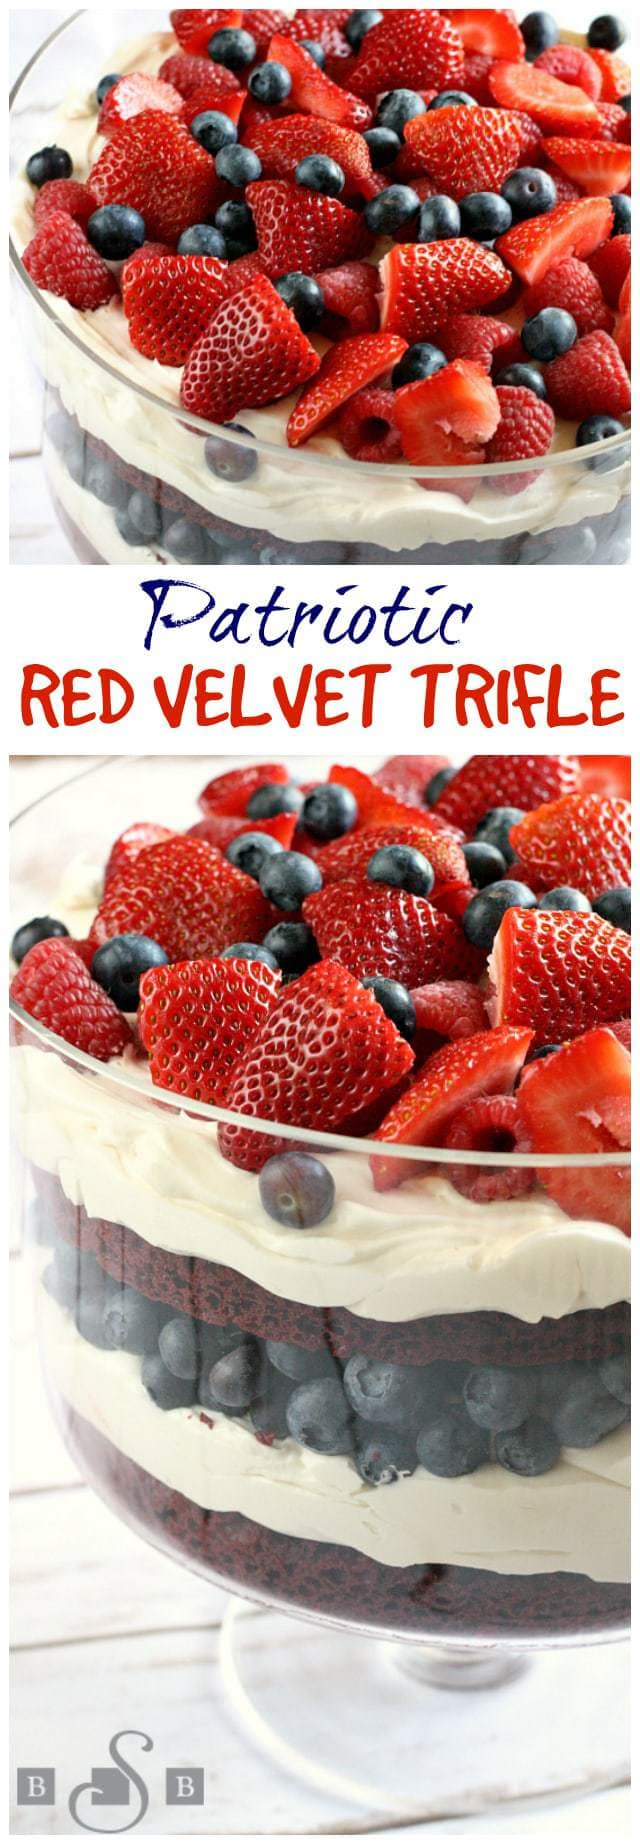 I love making trifles because they look so fancy, but they are so easy to put together! I had never made one with red velvet cake before, but it is the perfect base for a patriotic dessert, especially when topped off with blueberries, raspberries and strawberries! I just used a boxed mix for the cake and it turned outto be an amazing dessert!